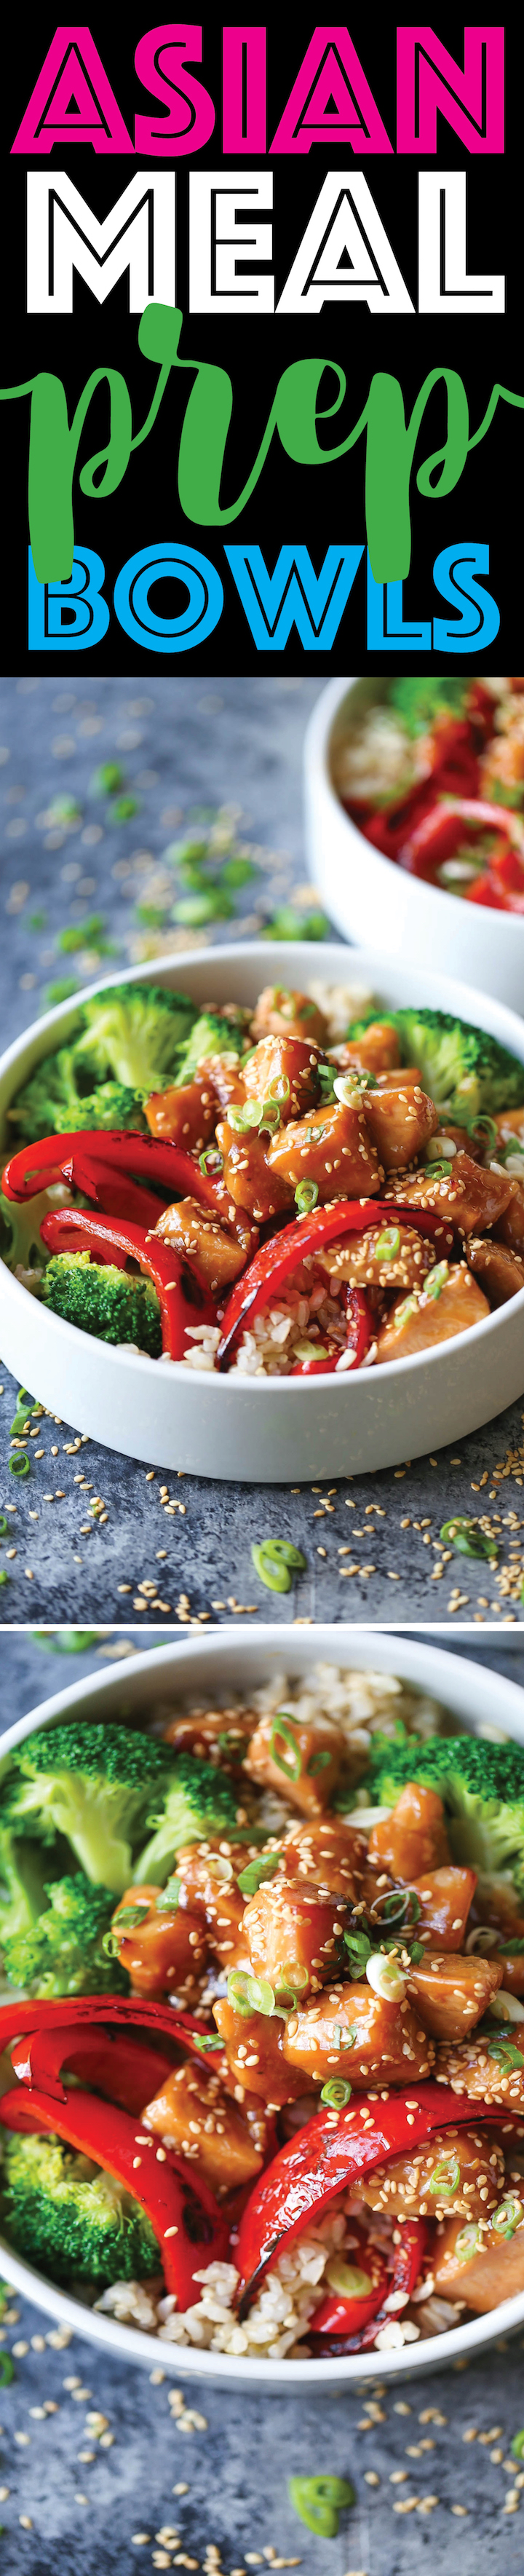 Asian Meal Prep Bowls -Meal prep for the entire week with teriyaki chicken, broccoli, bell pepper and brown rice. The sauce is also completely homemade!